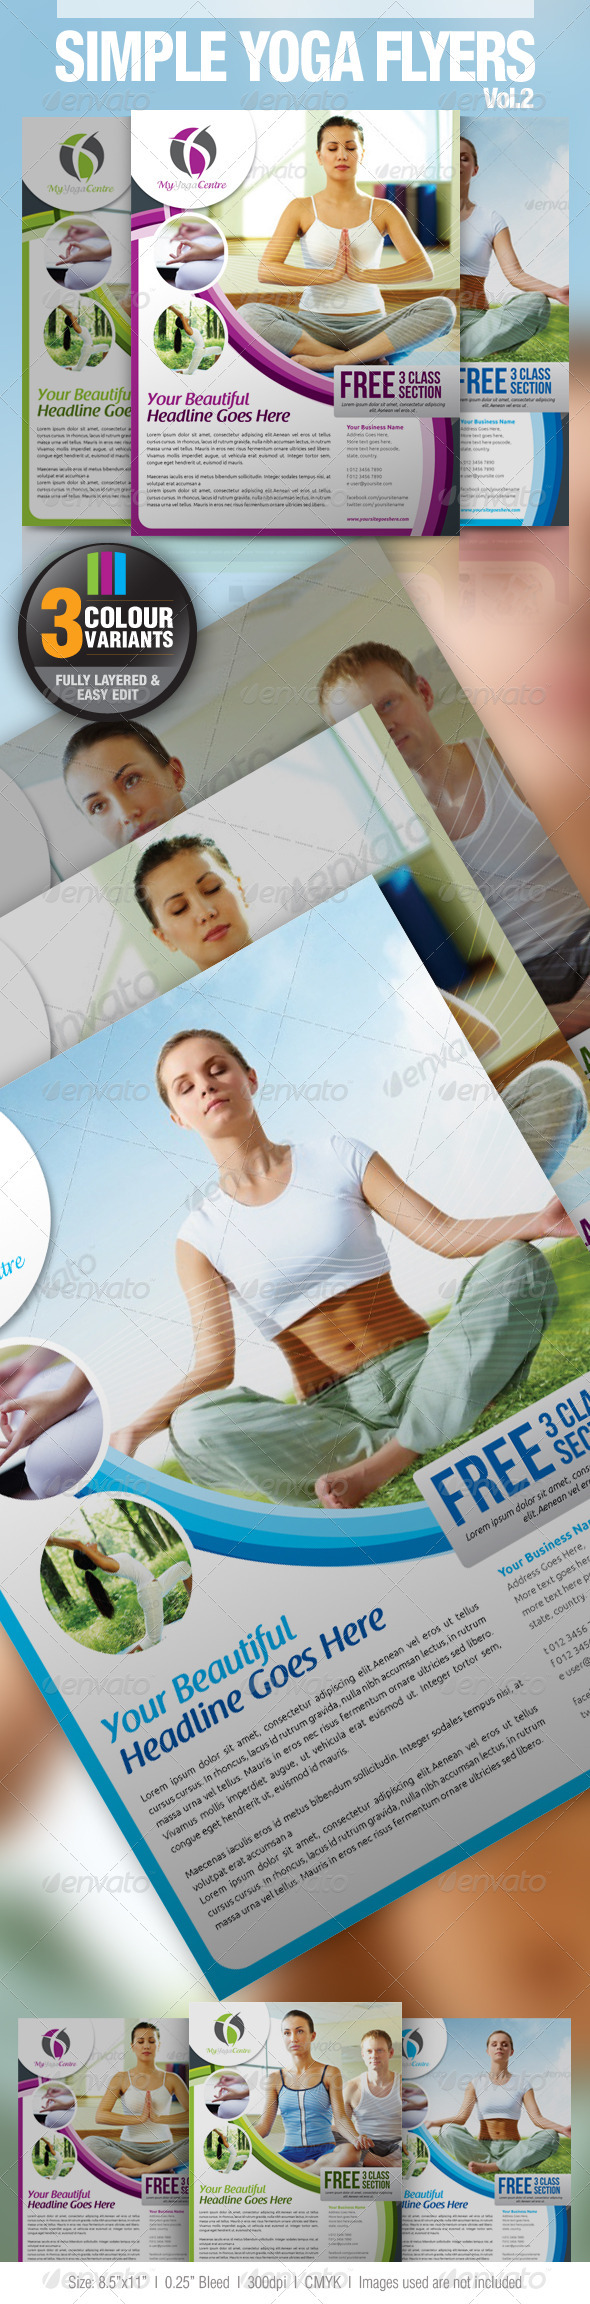 GraphicRiver Simple Yoga Flyer Vol.2 2820260